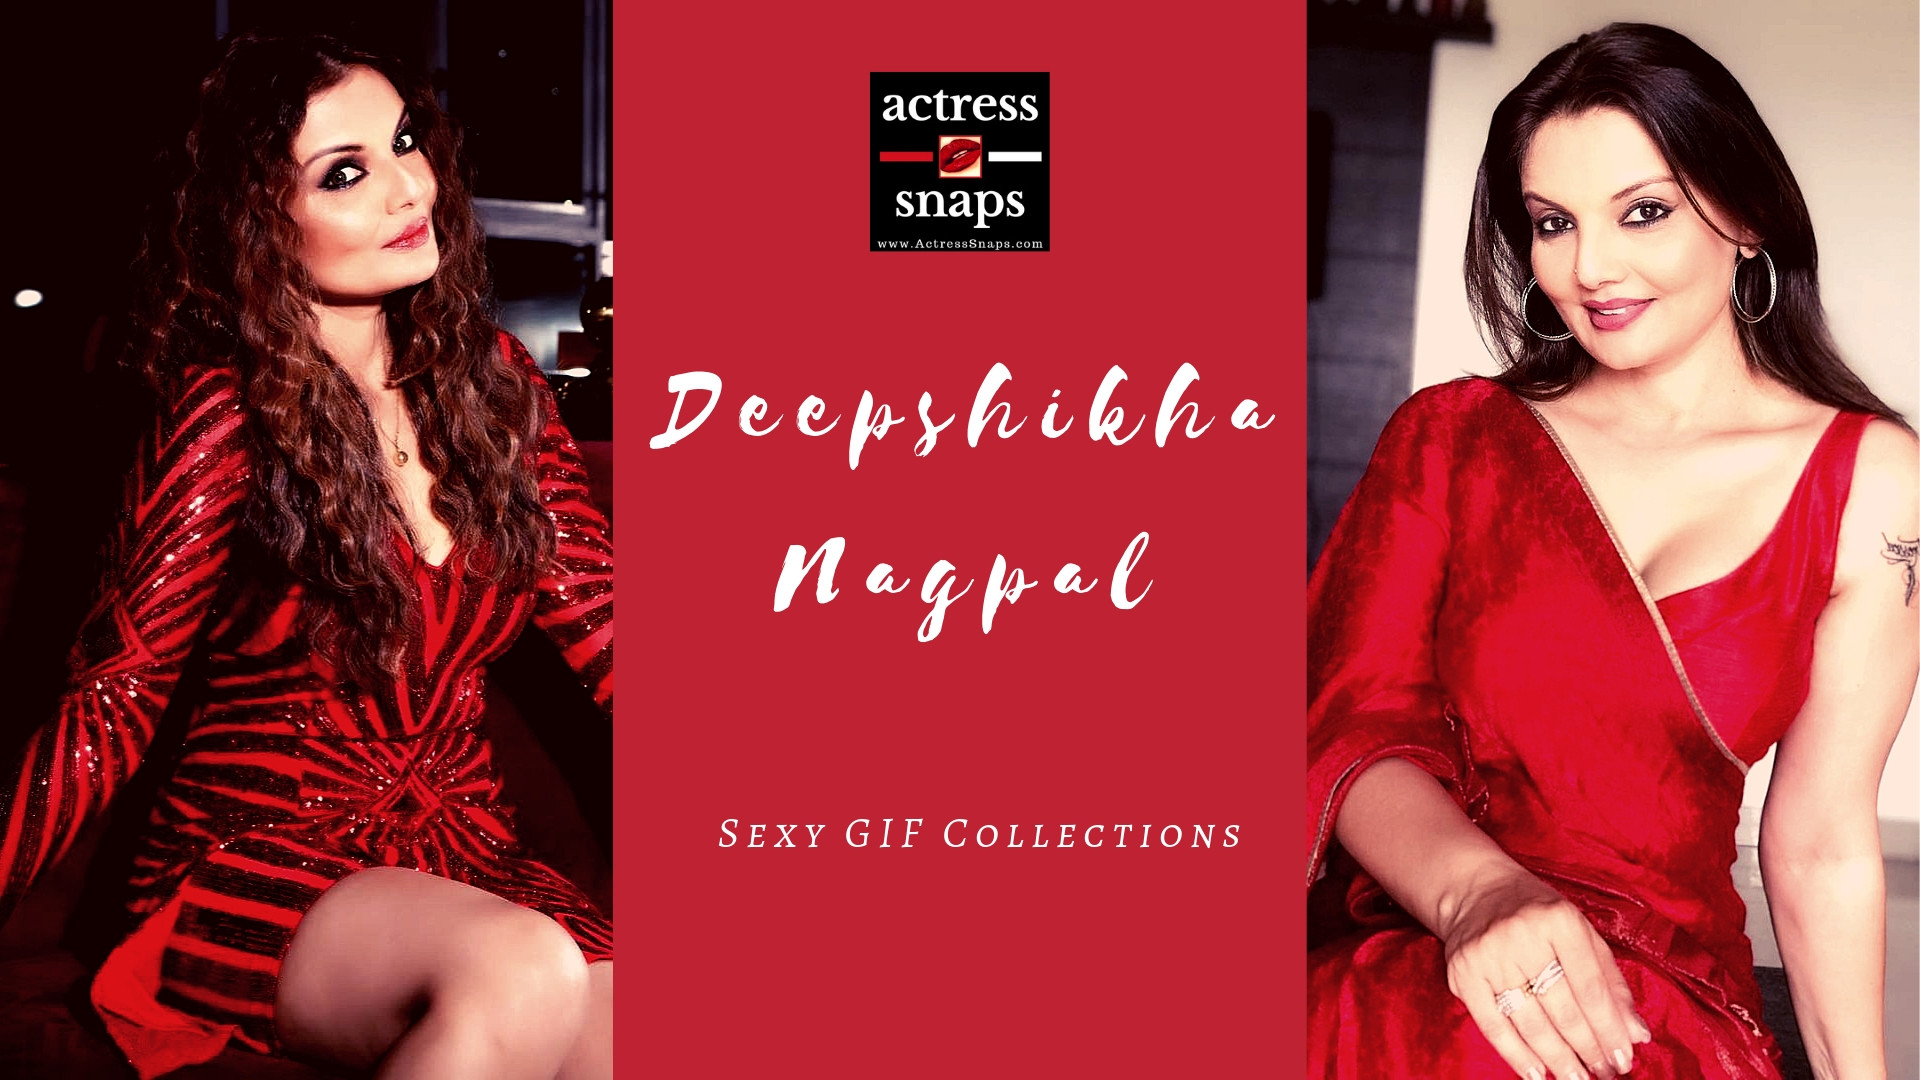 Sexy Deepshikha Nagpal GIFs - Sexy Actress Pictures | Hot Actress Pictures - ActressSnaps.com